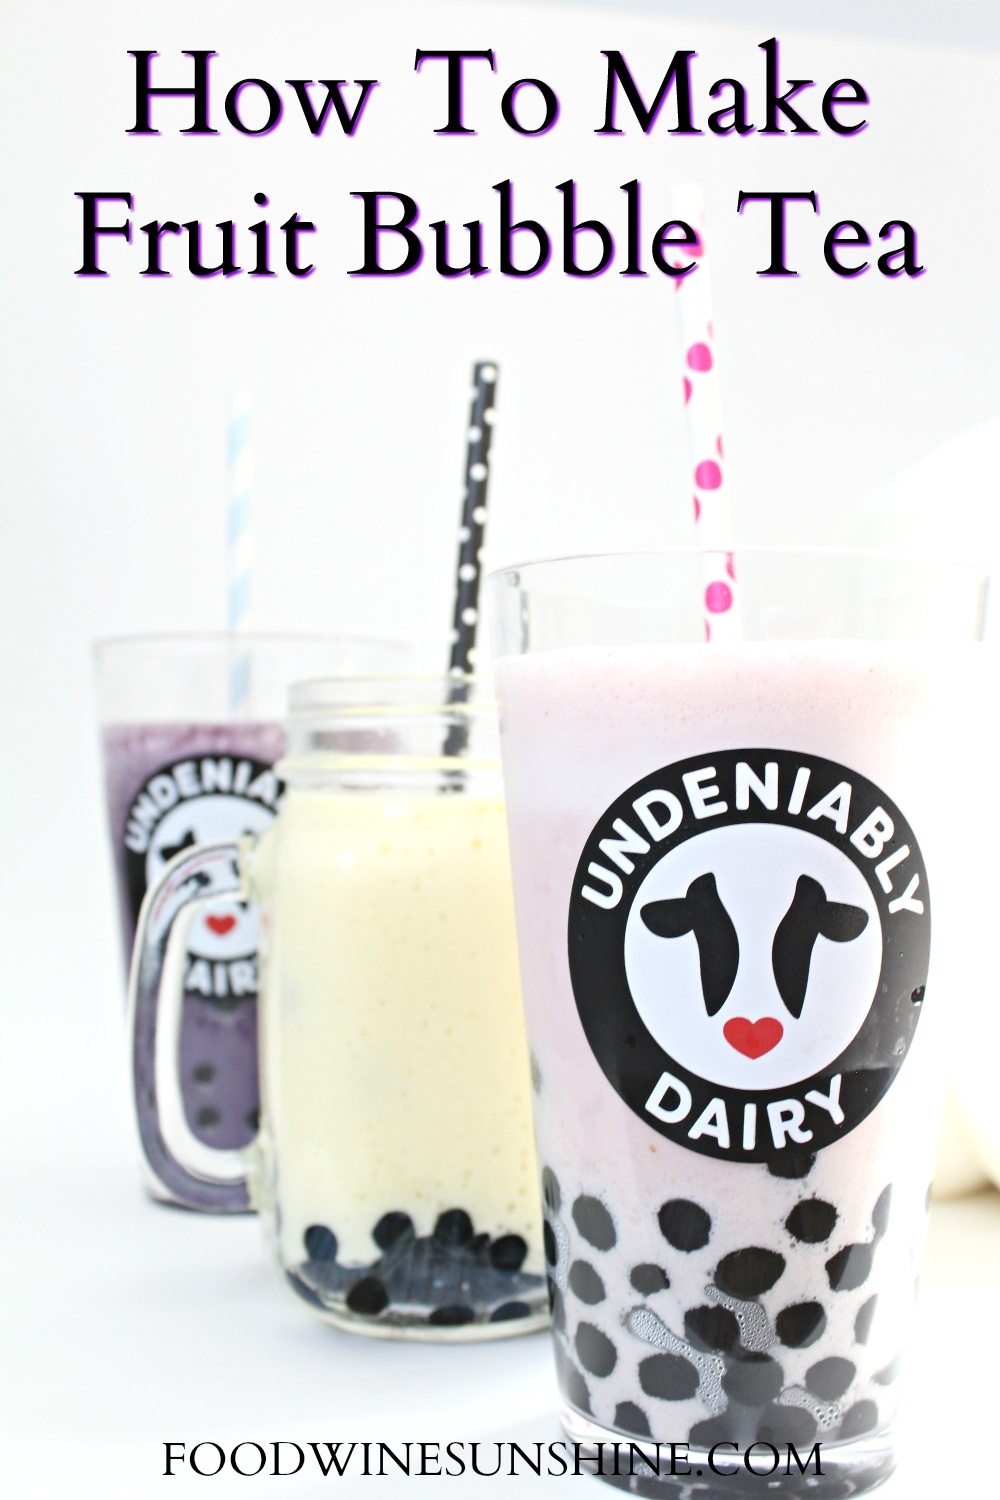 How To Make Fruit Bubble Teas at home